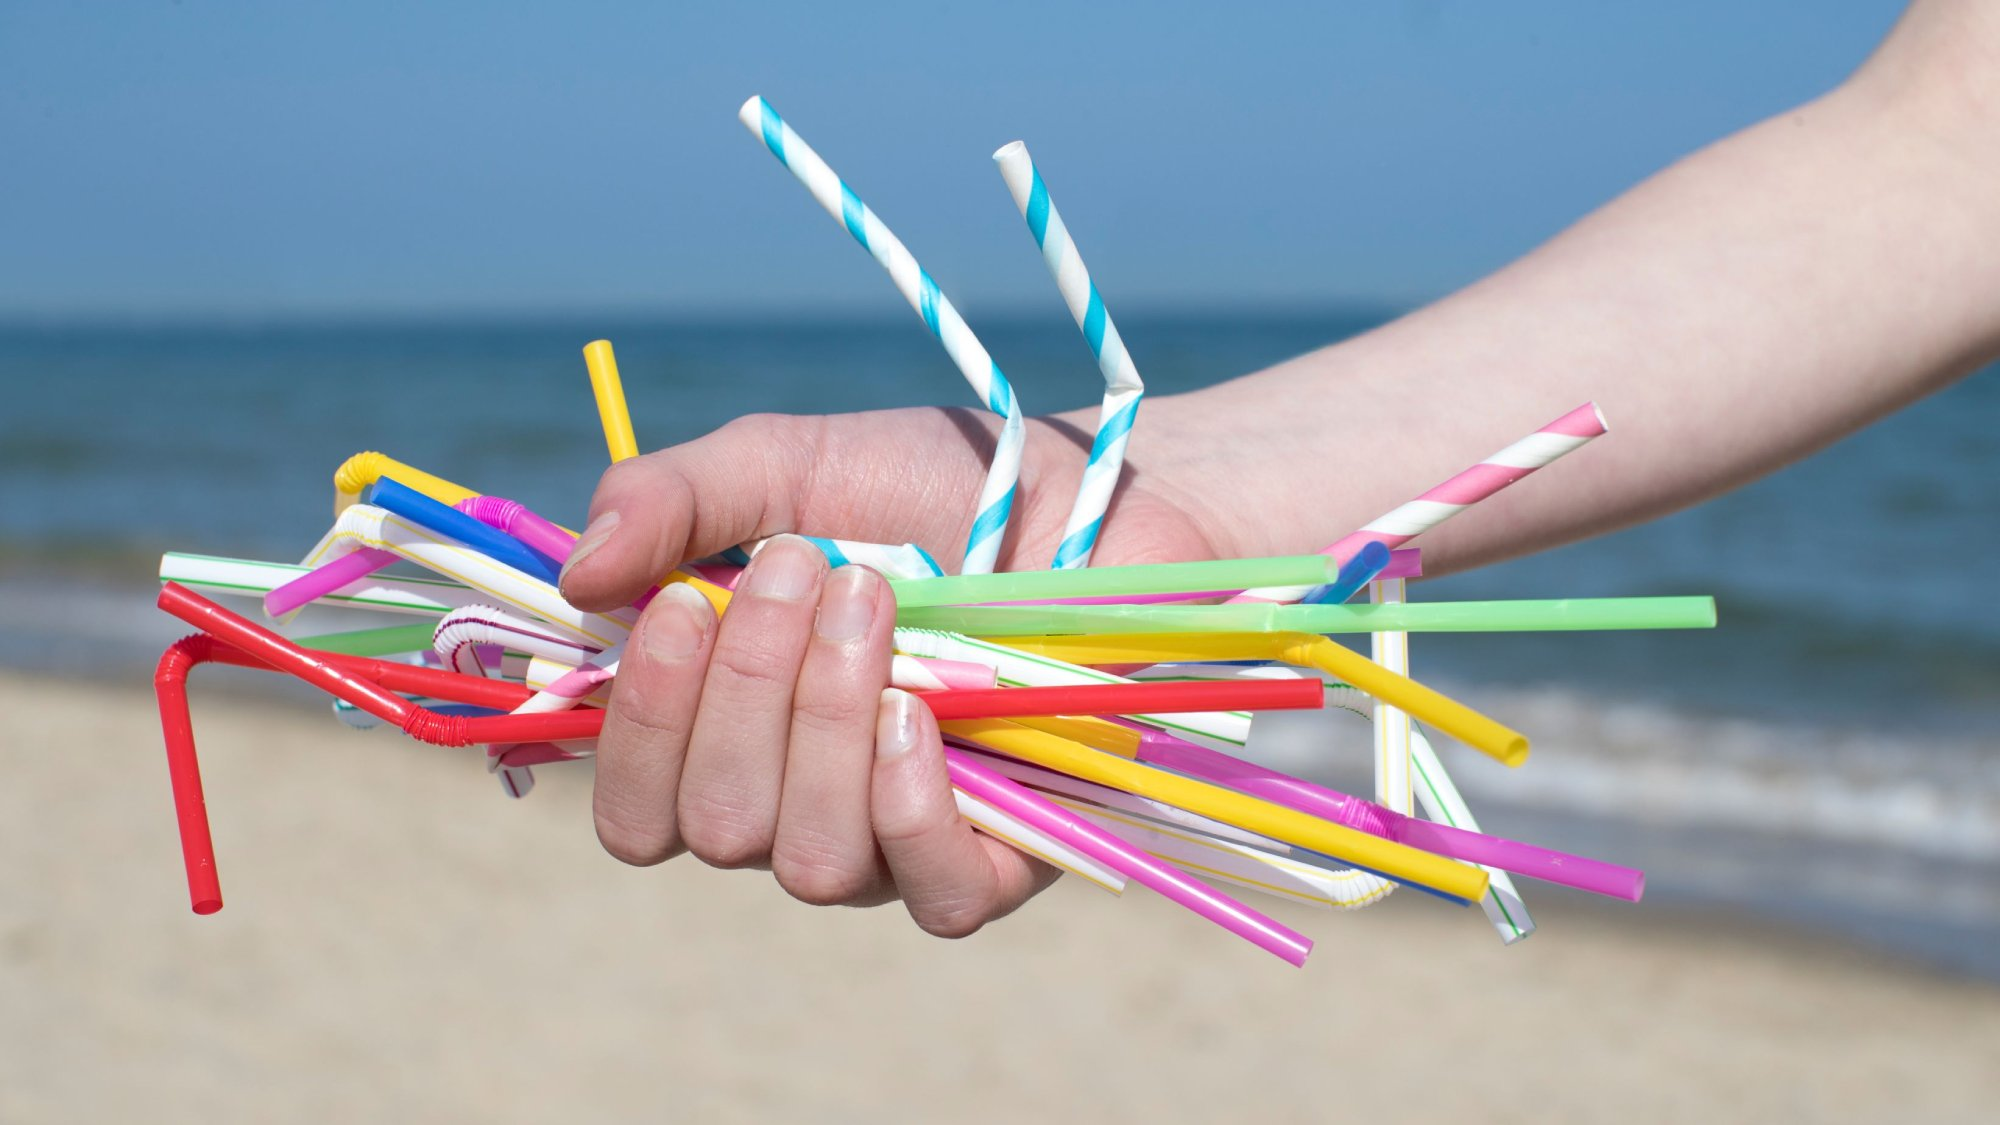 a hand holding some straws